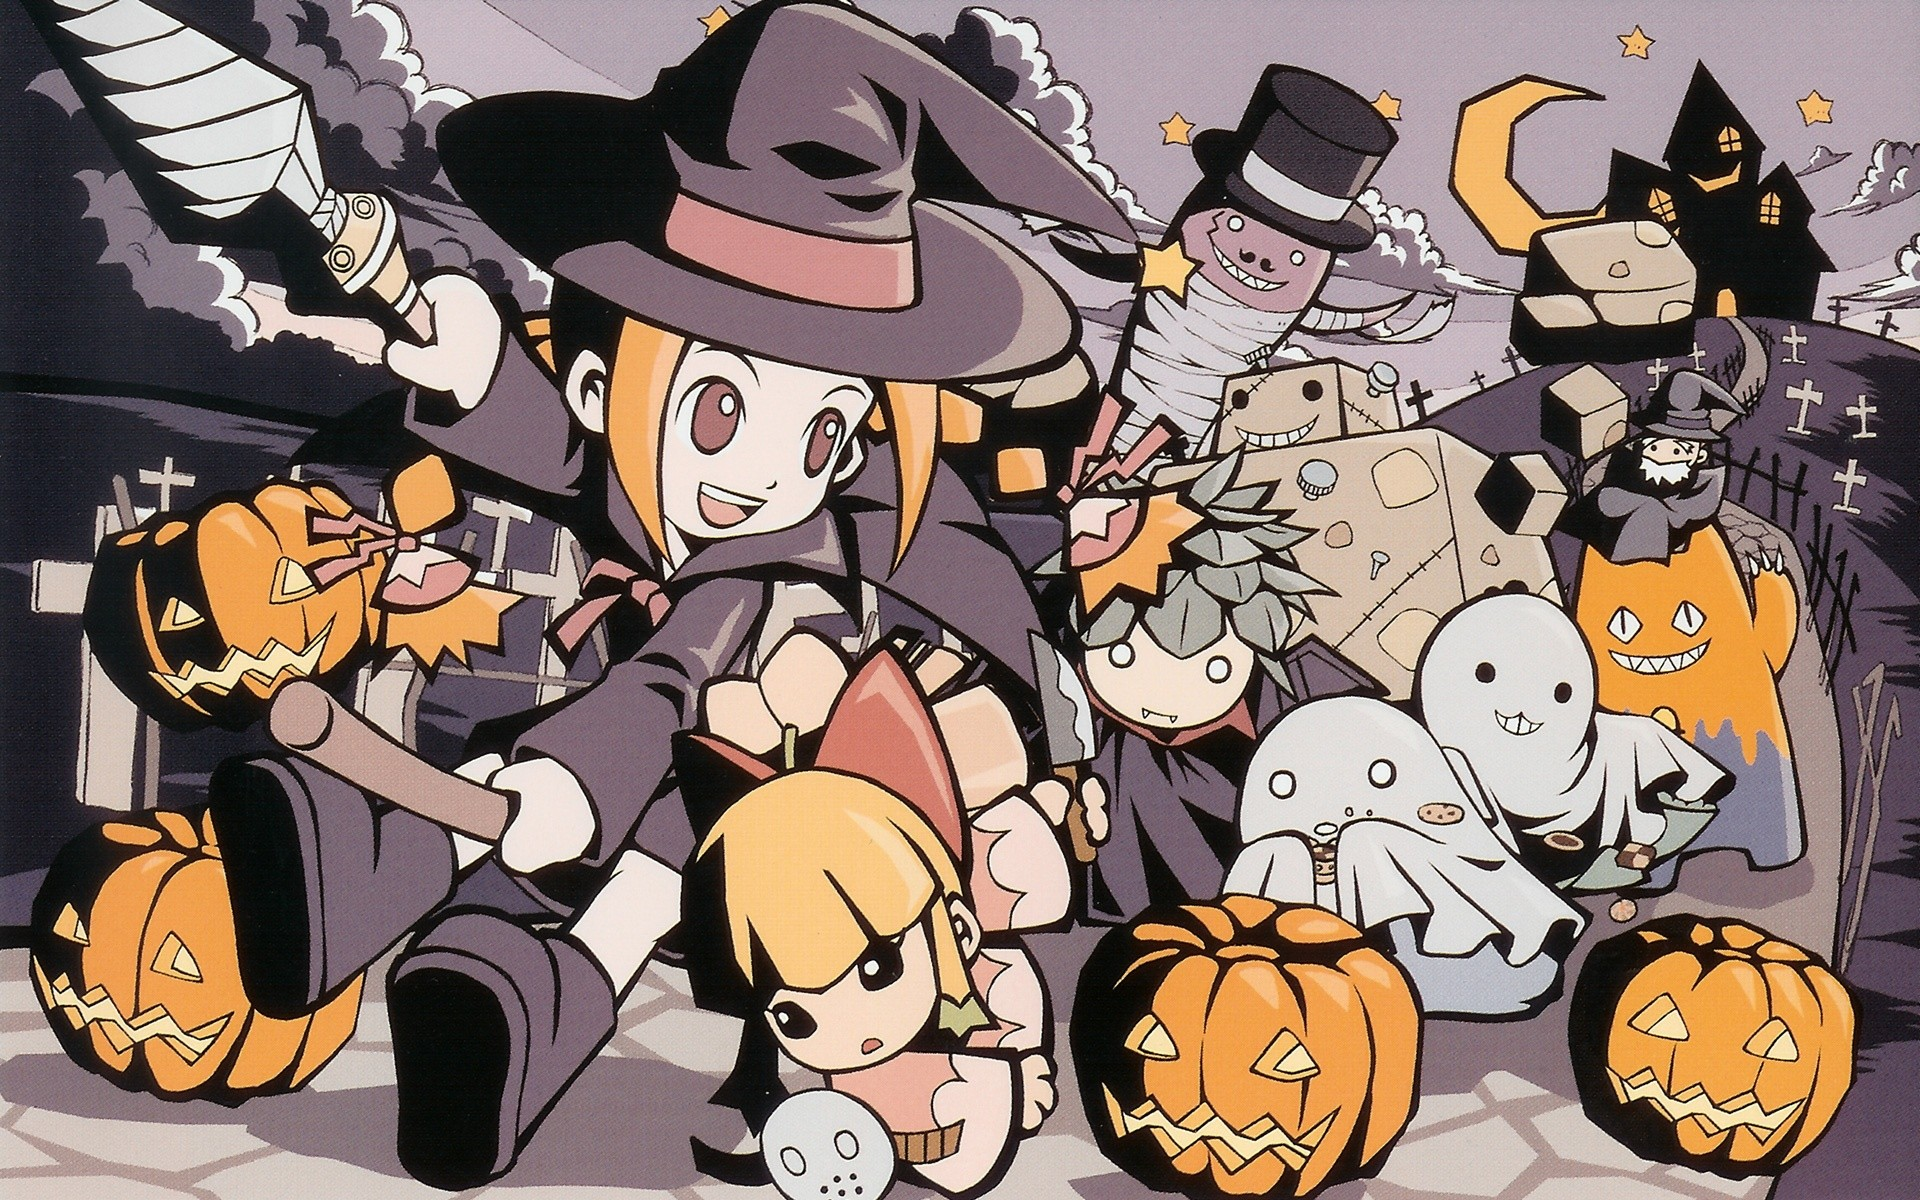 bandage blonde_hair boots bow building cape clouds fang food green_hair group gurumin halloween hat mask moon orange_hair pumpkin robot sky staff stars vampire weapon wings witch